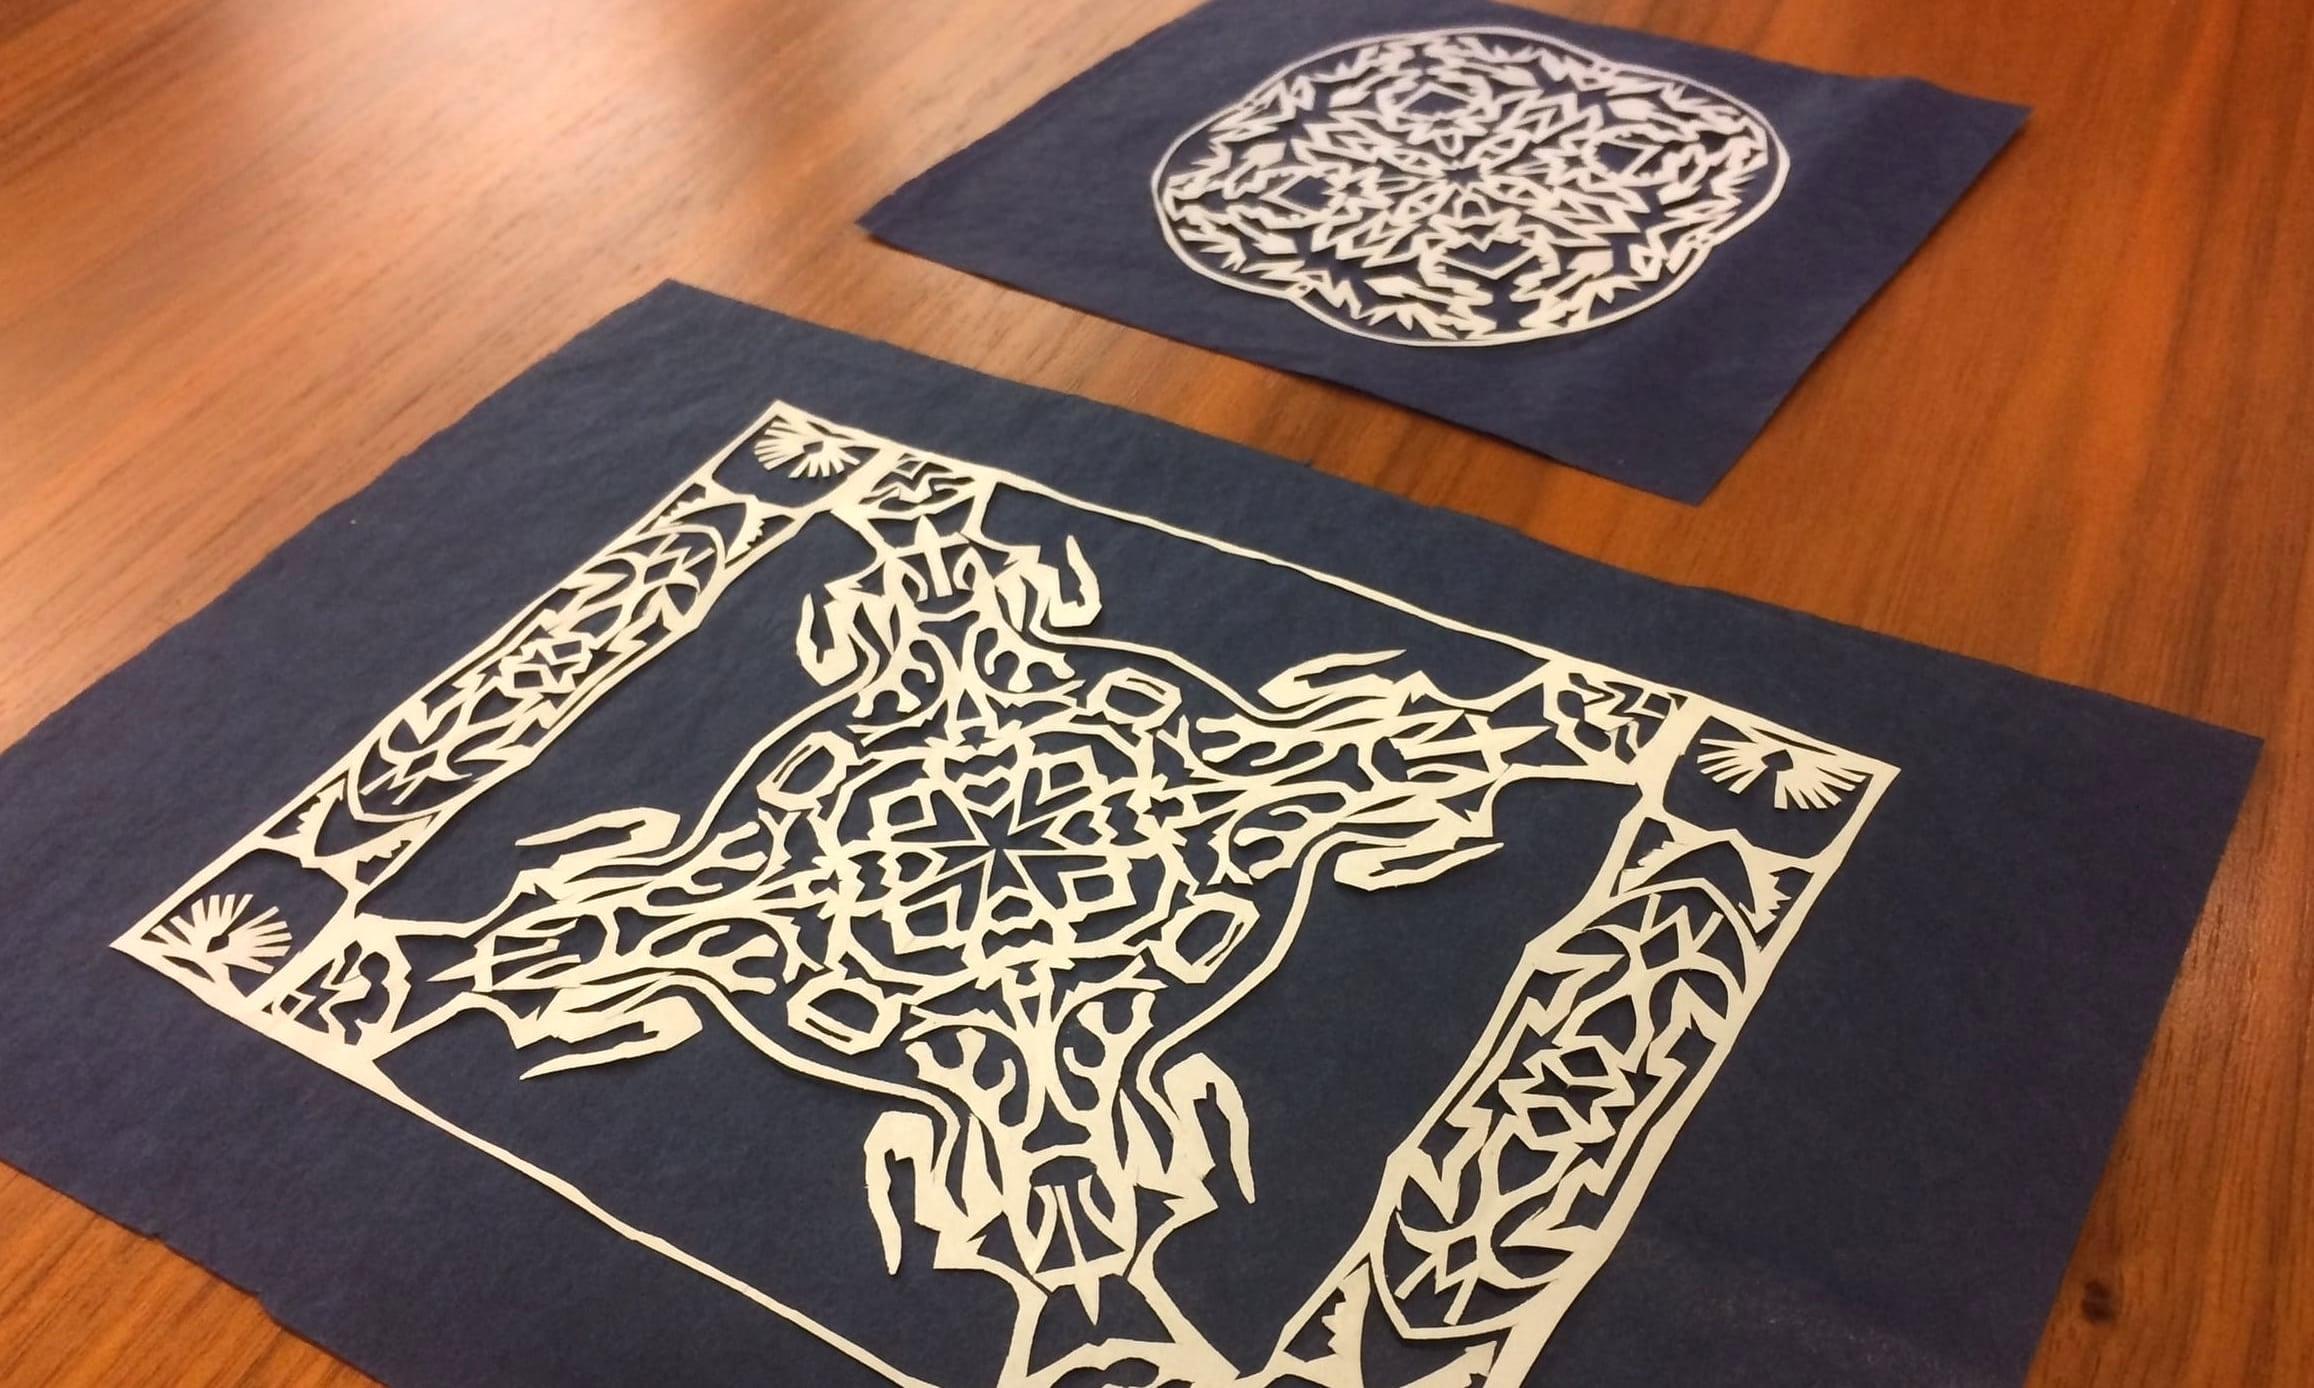 The paper cuttings